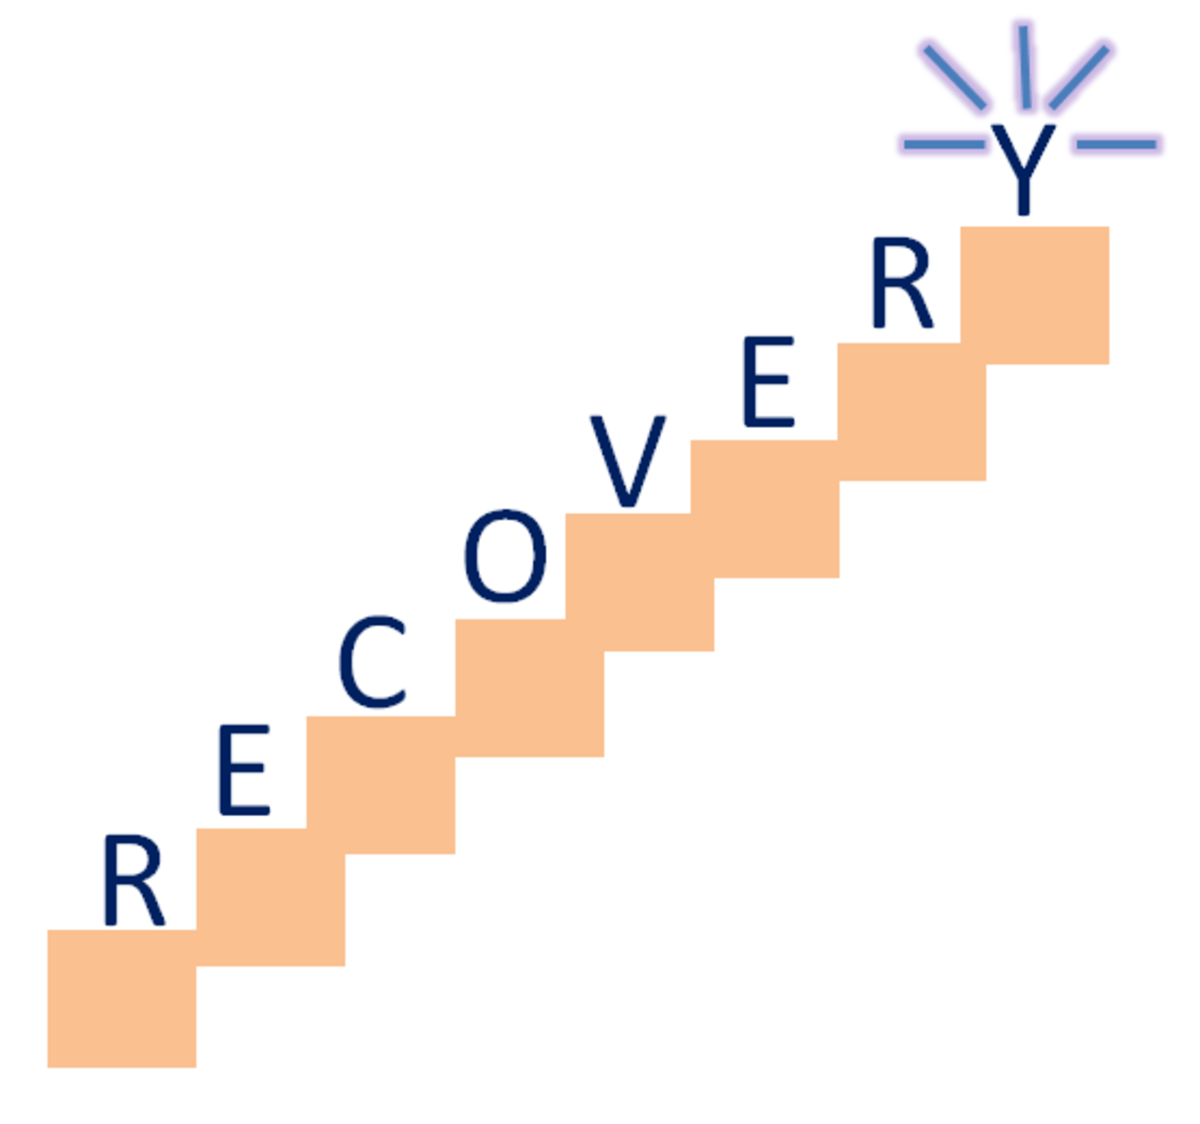 repeat-and-try-again-five-steps-to-financial-recovery-after-personal-setback